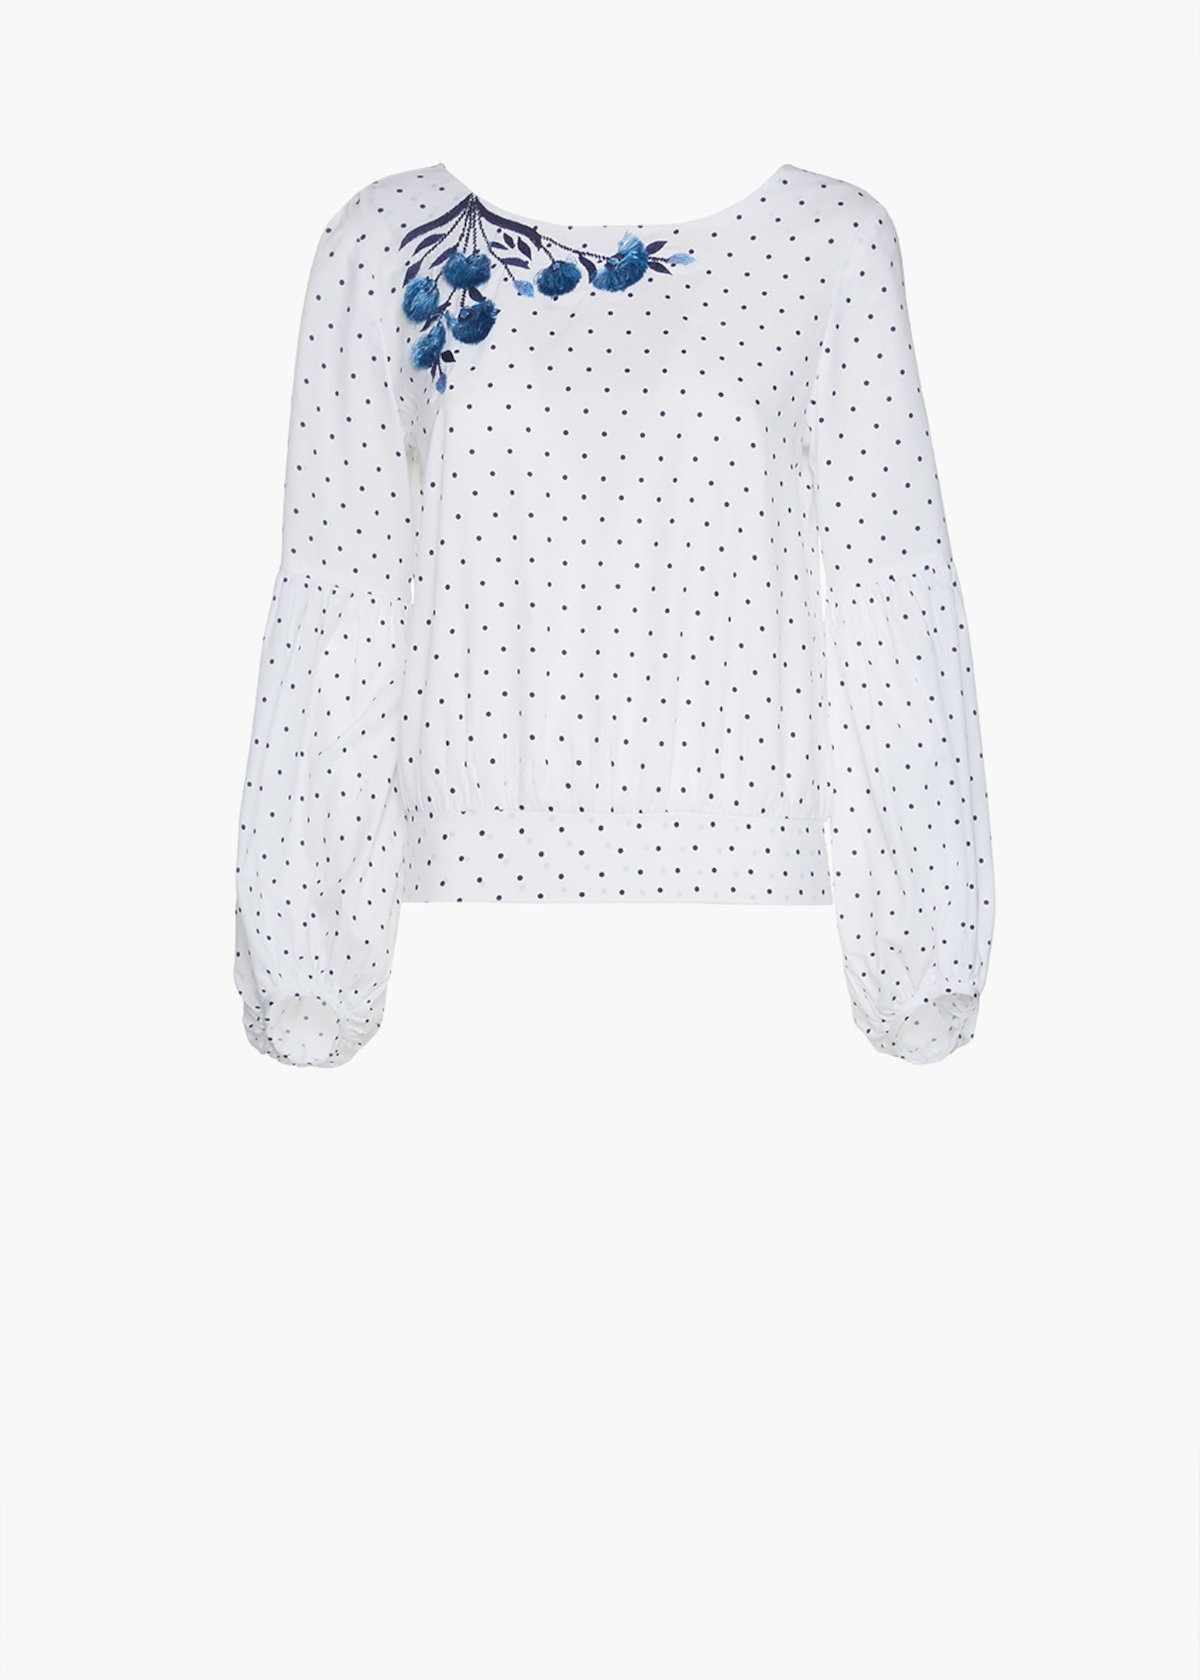 Cyprien blouse with polka dot print and boat neckline - White / Medium Blue - Woman